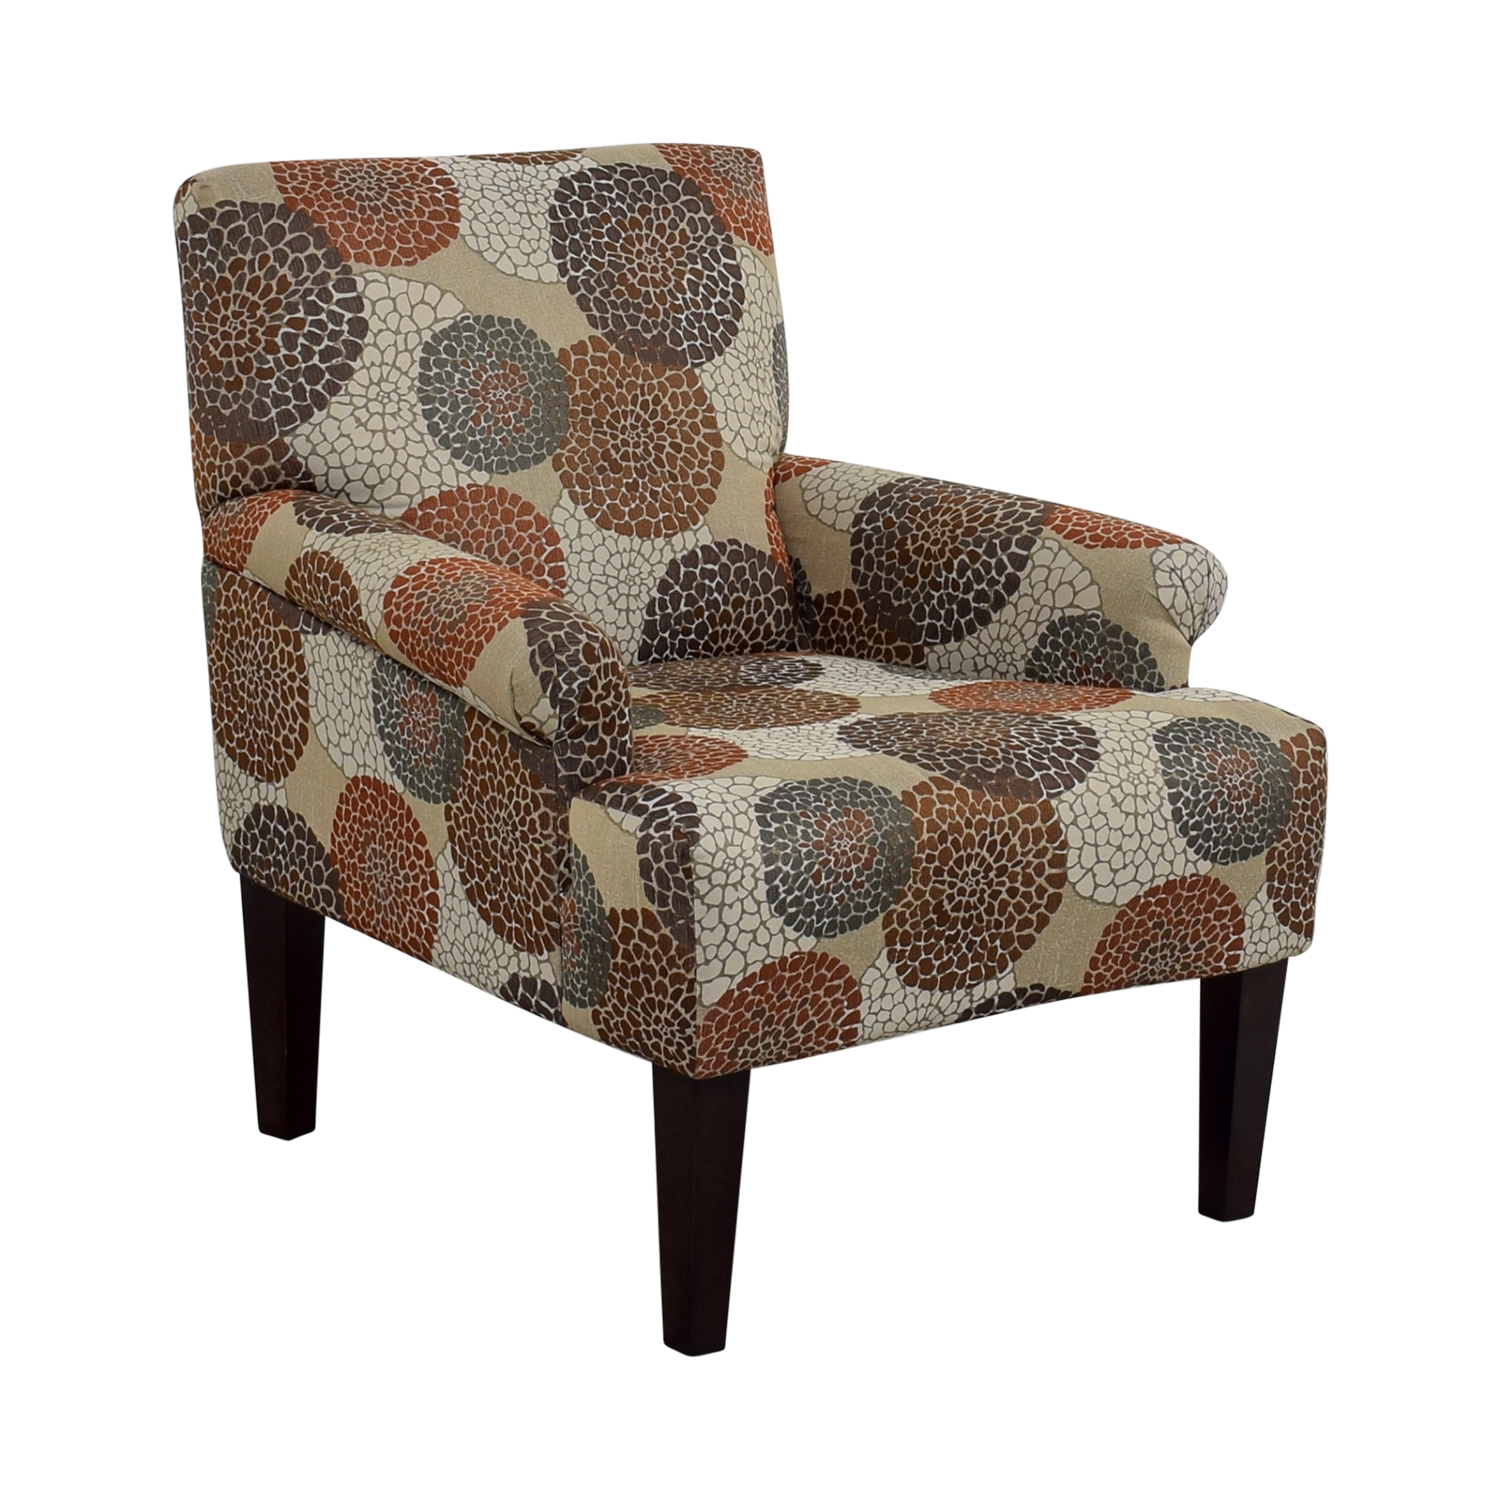 ... Raymour U0026 Flanigan Raymour U0026 Flanigan Multi Colored Floral Accent Chair  Multi Colored ...